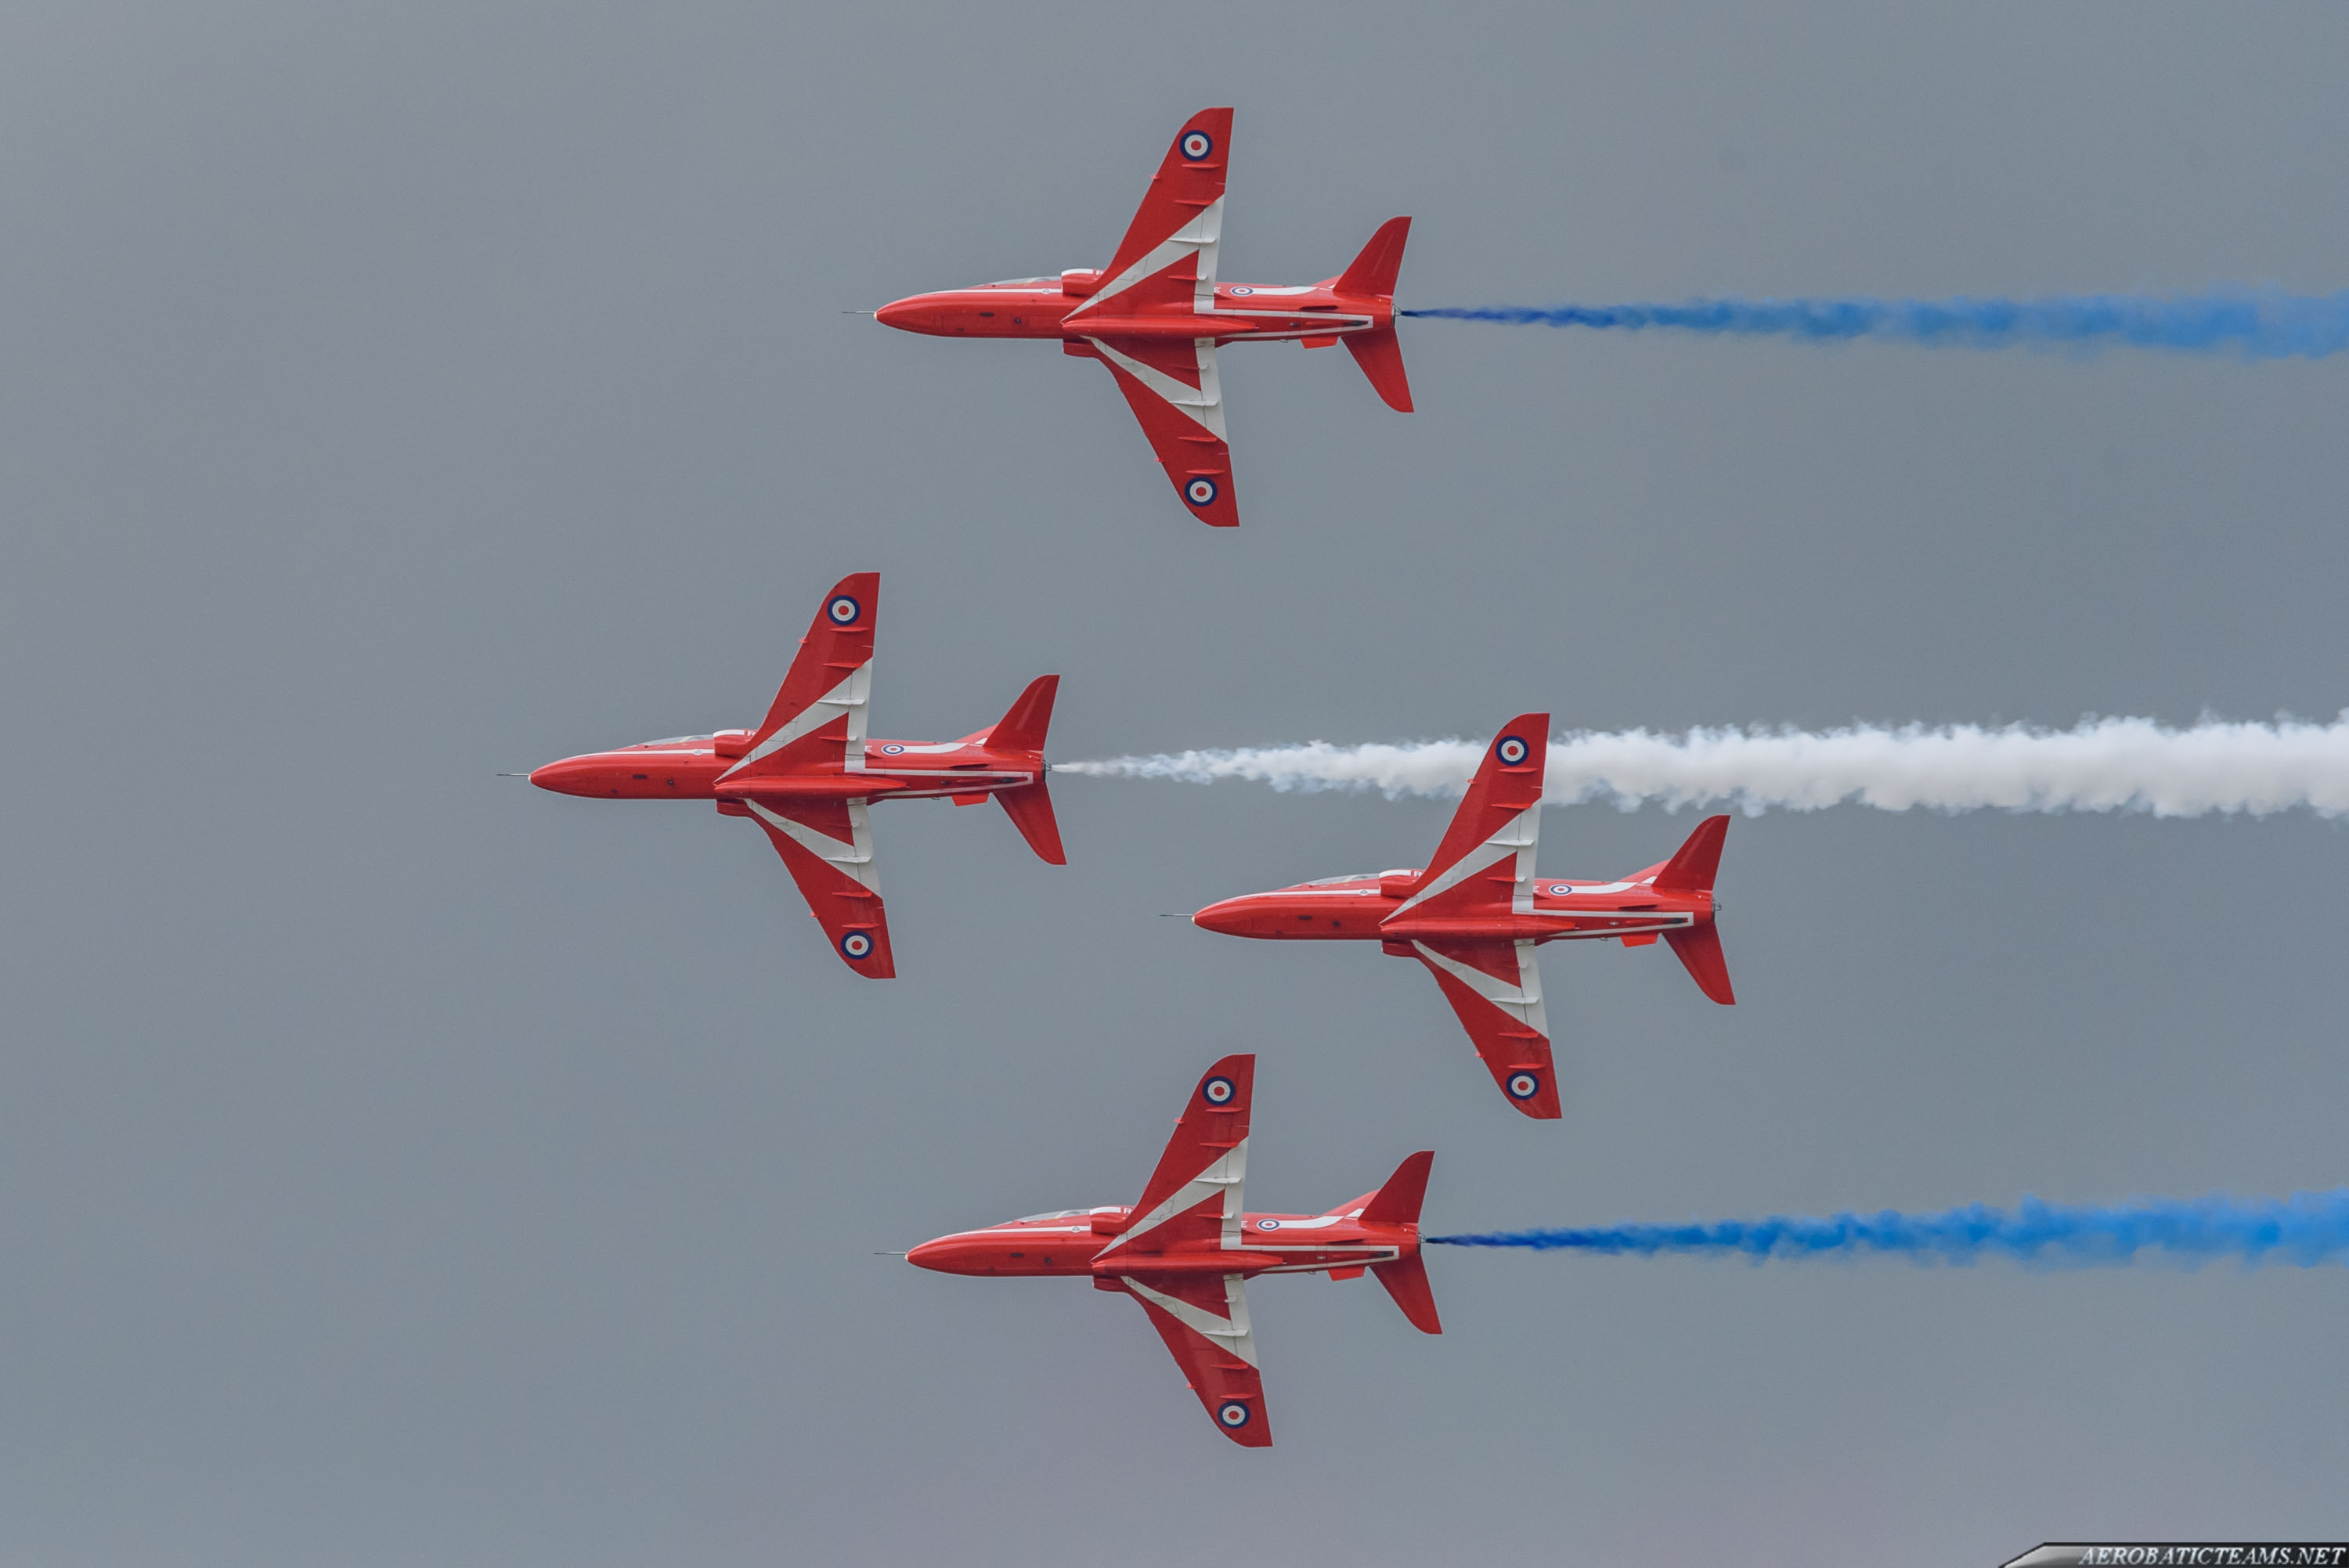 Red Arrows 2018 schedule